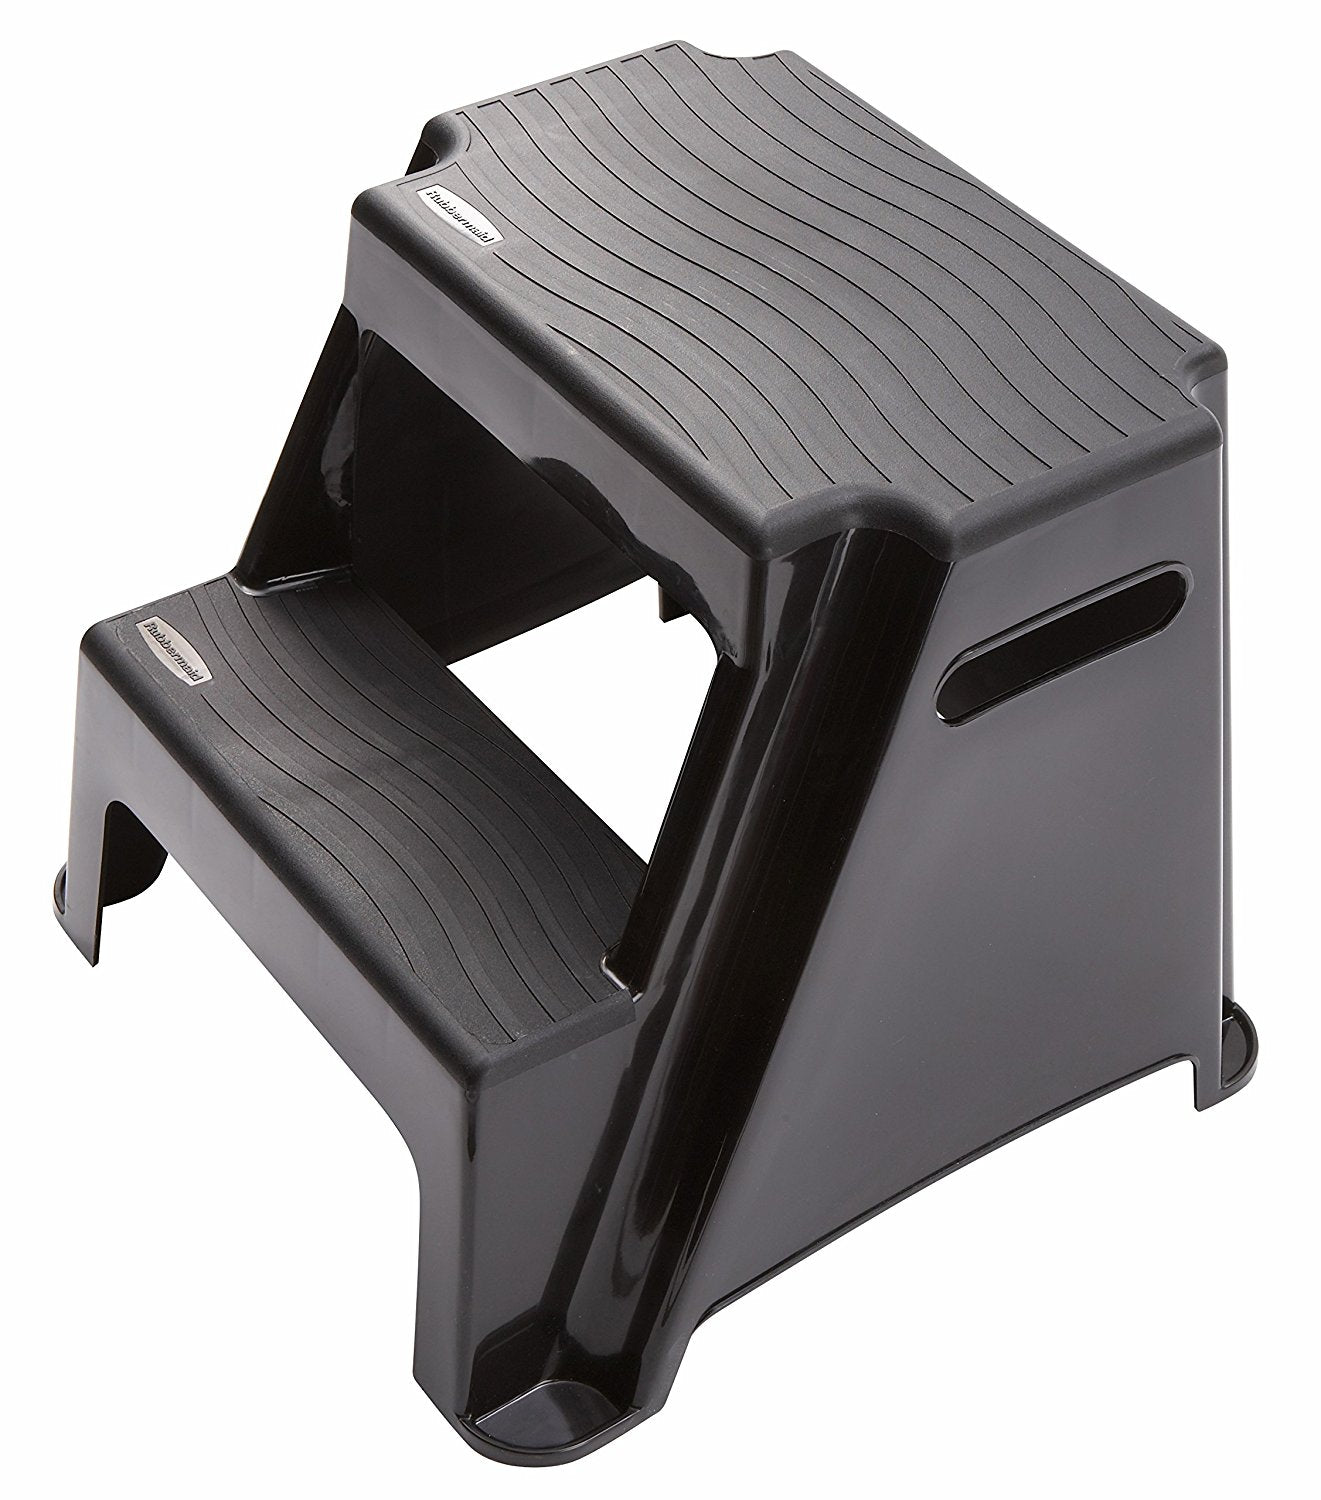 Remarkable Rubbermaid Rm P2 2 Step Molded Plastic Stool Caraccident5 Cool Chair Designs And Ideas Caraccident5Info